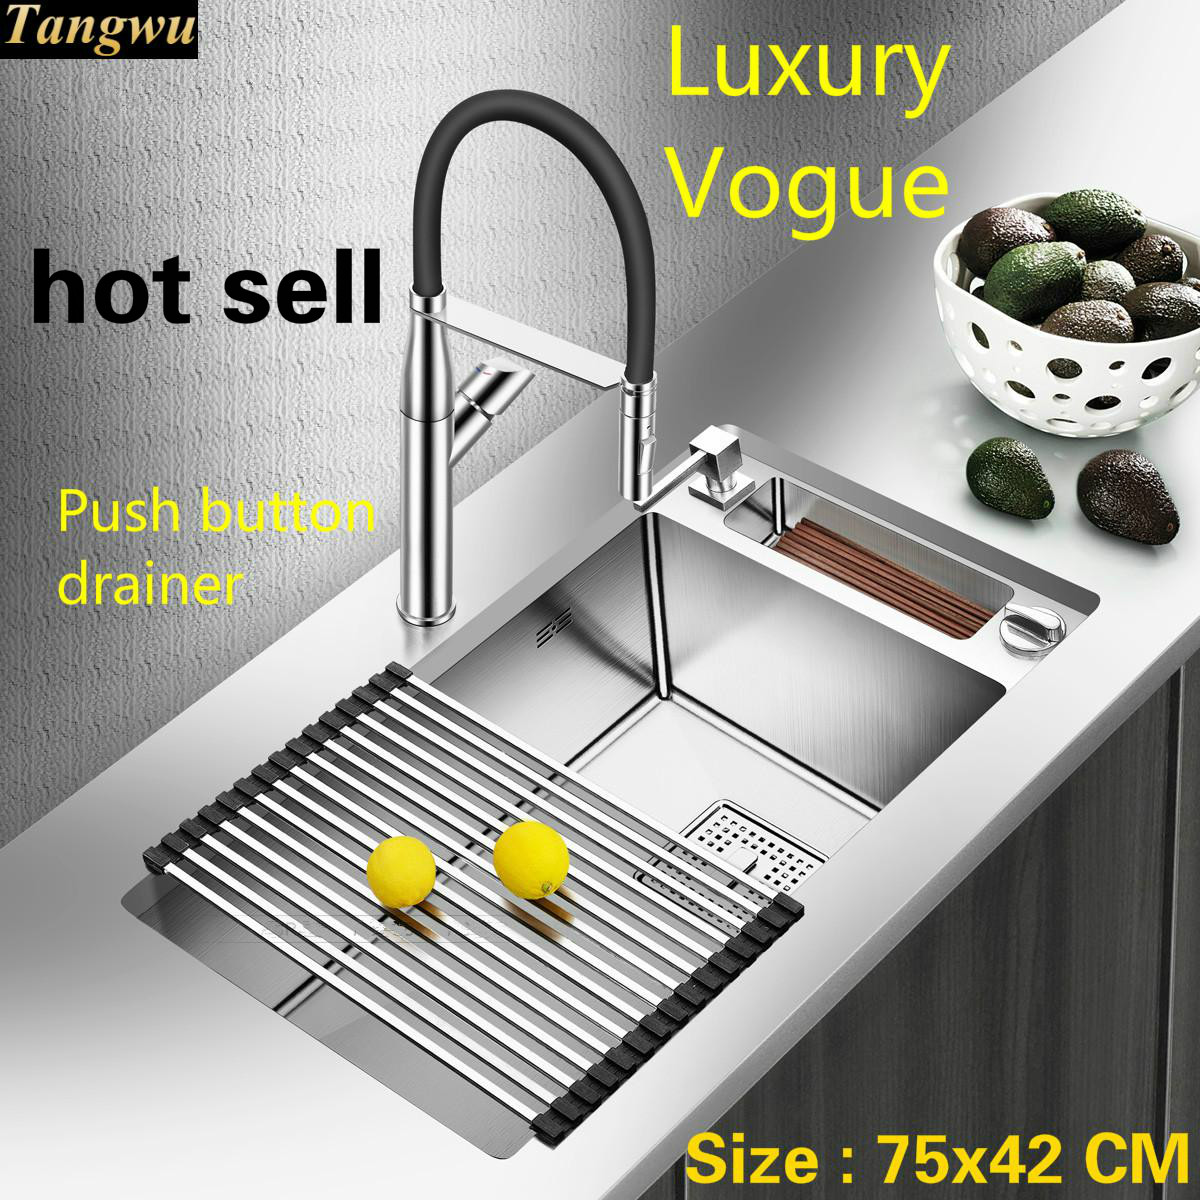 Free Shipping Household Big Kitchen Manual Sink Single Trough Dish Washing Durable 304 Stainless Steel Luxury Hot Sell 75x42 CM